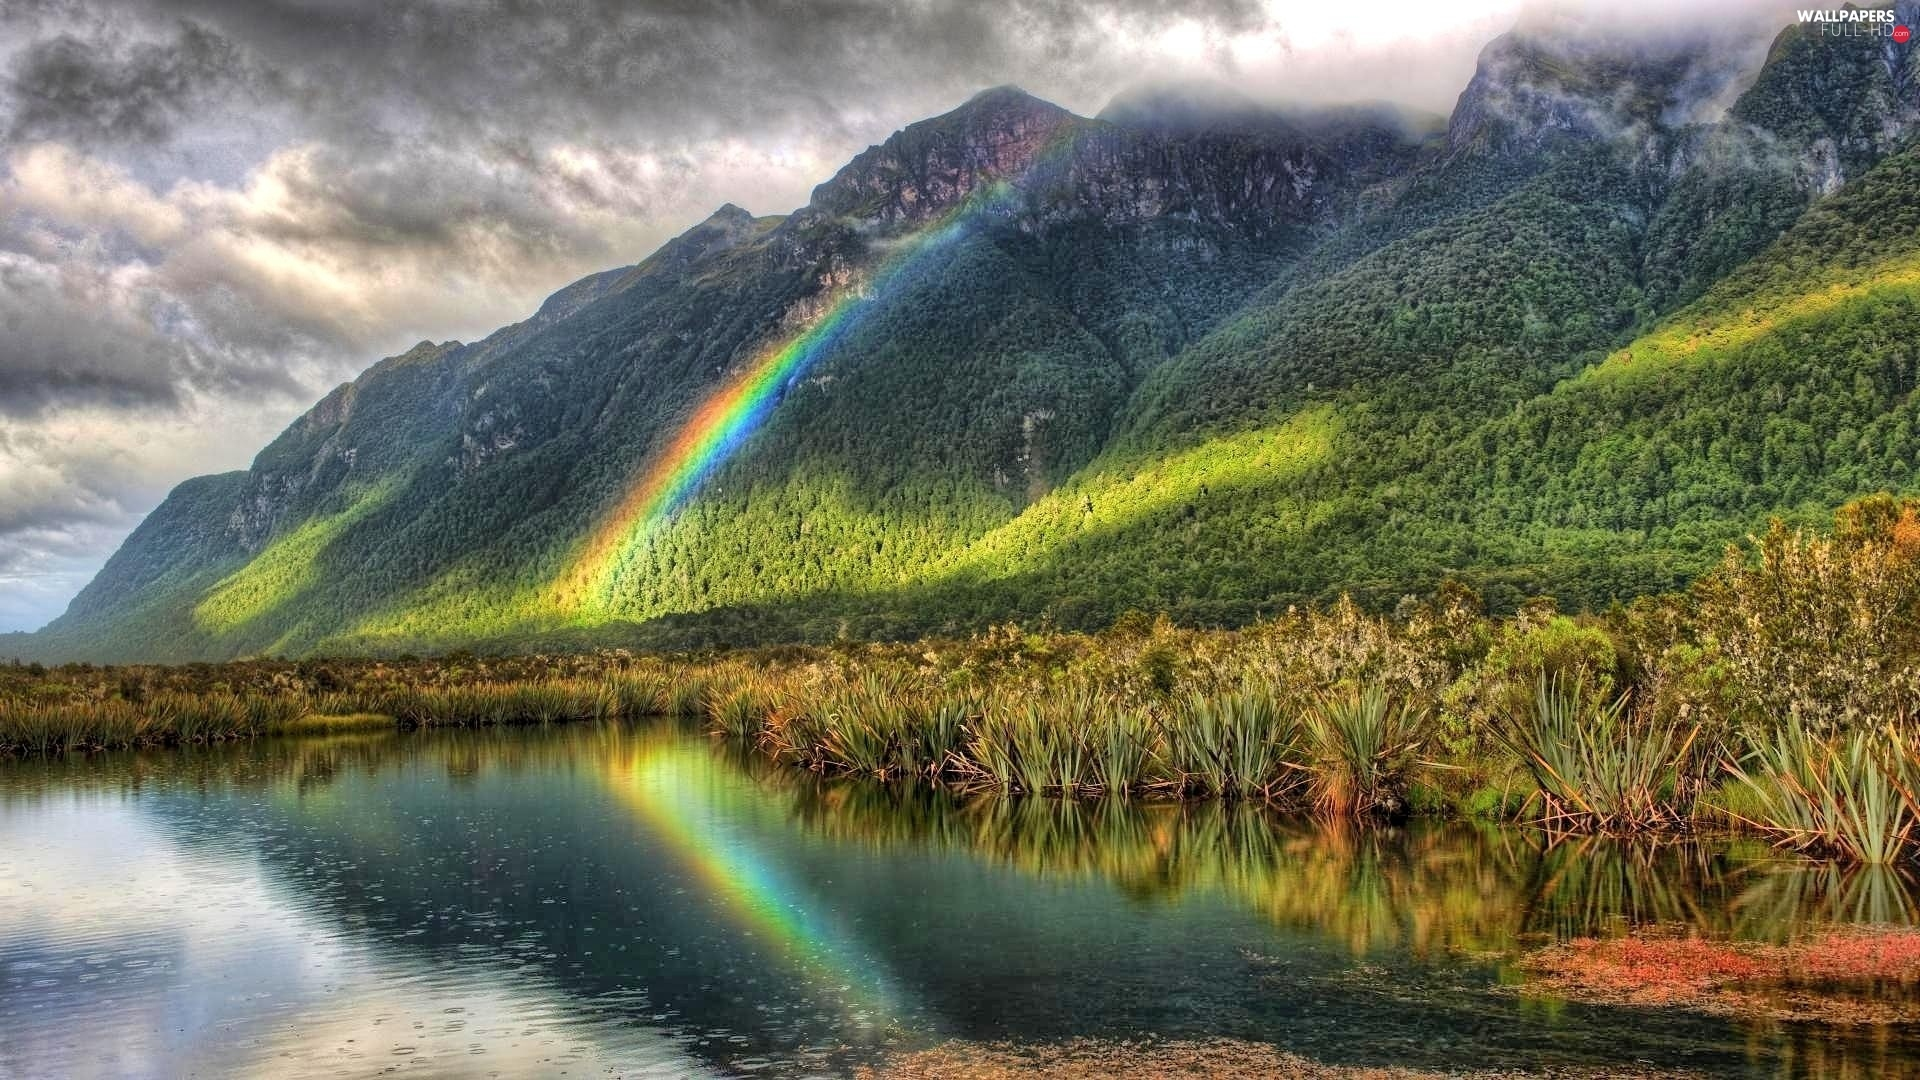 grass, Great Rainbows, lake, Mountains